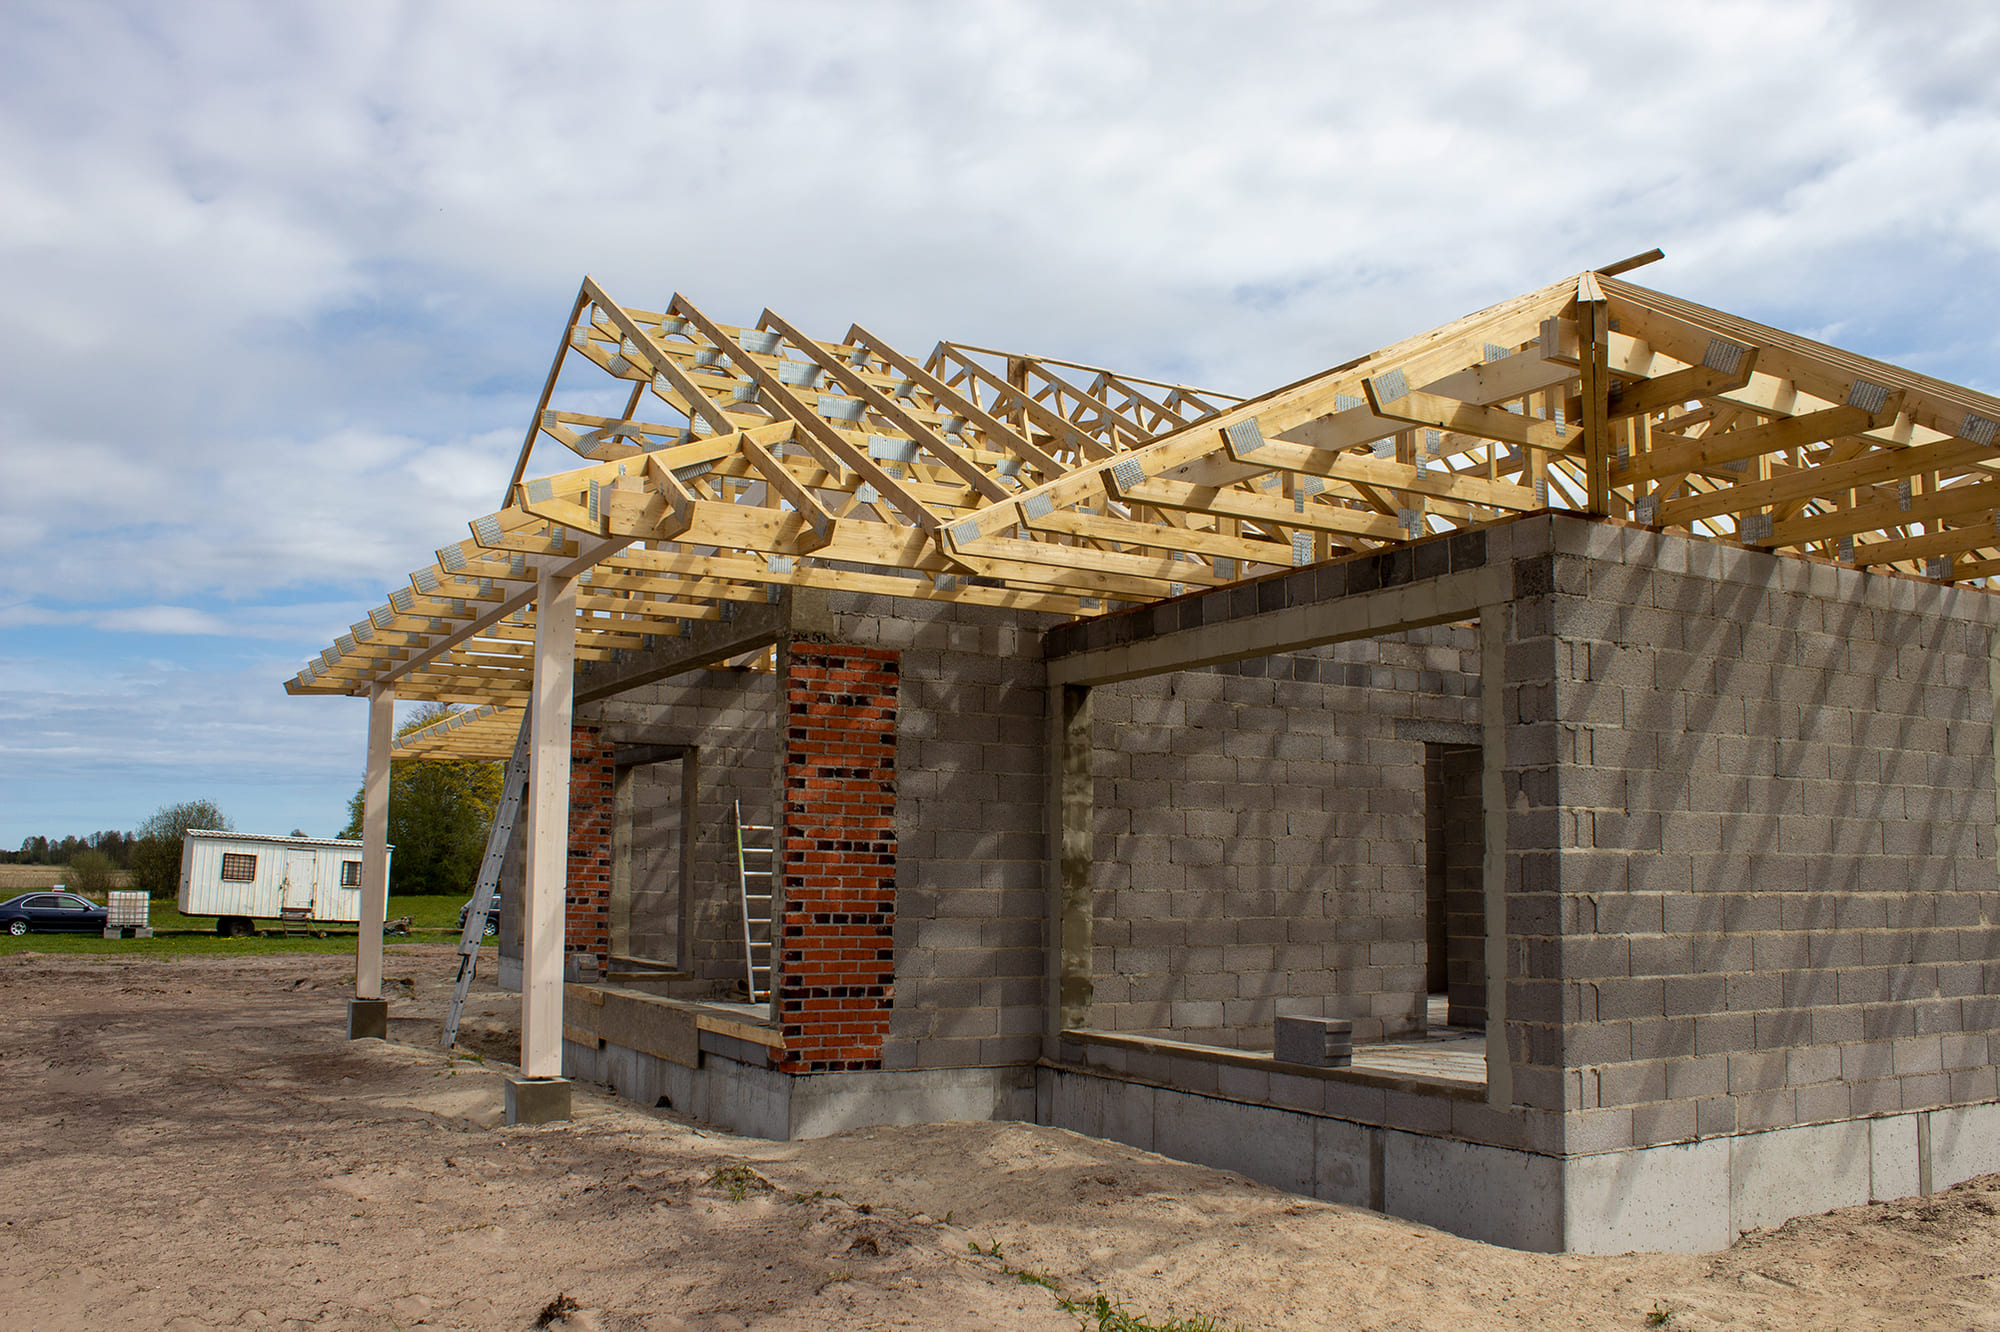 roof construction using wooden trusses for a private house